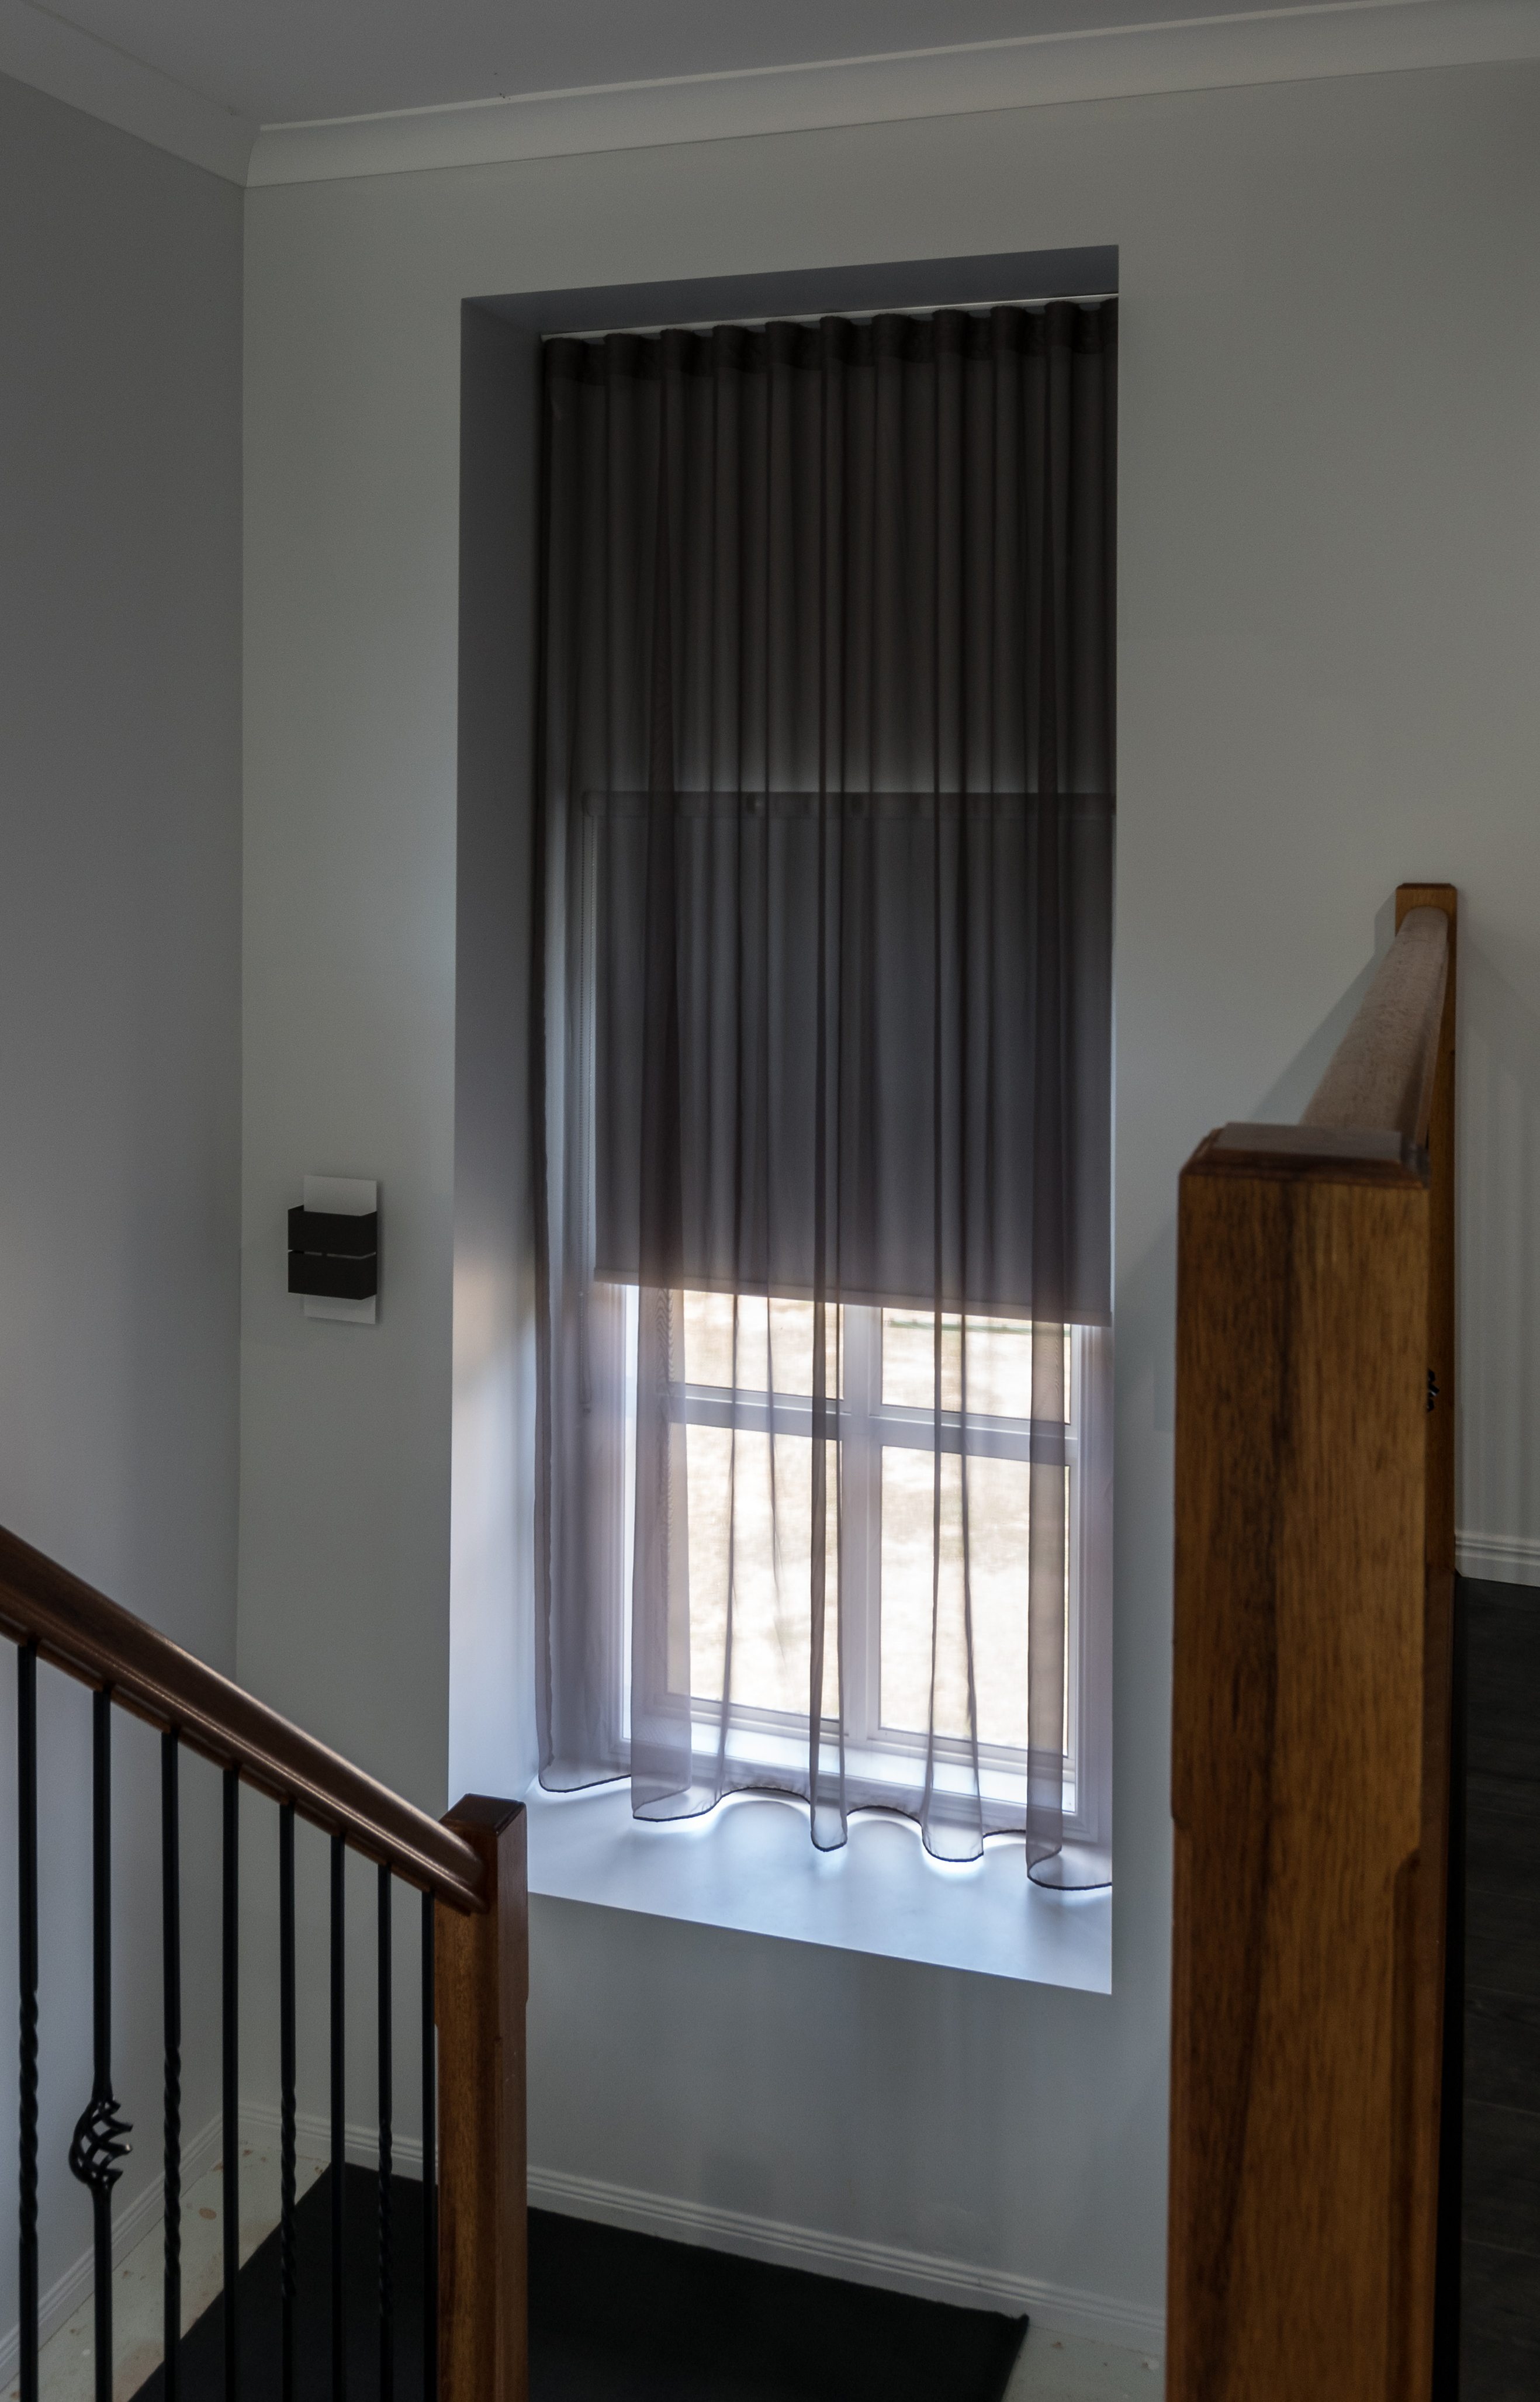 Stairwell recess S fold sheer with blind behind